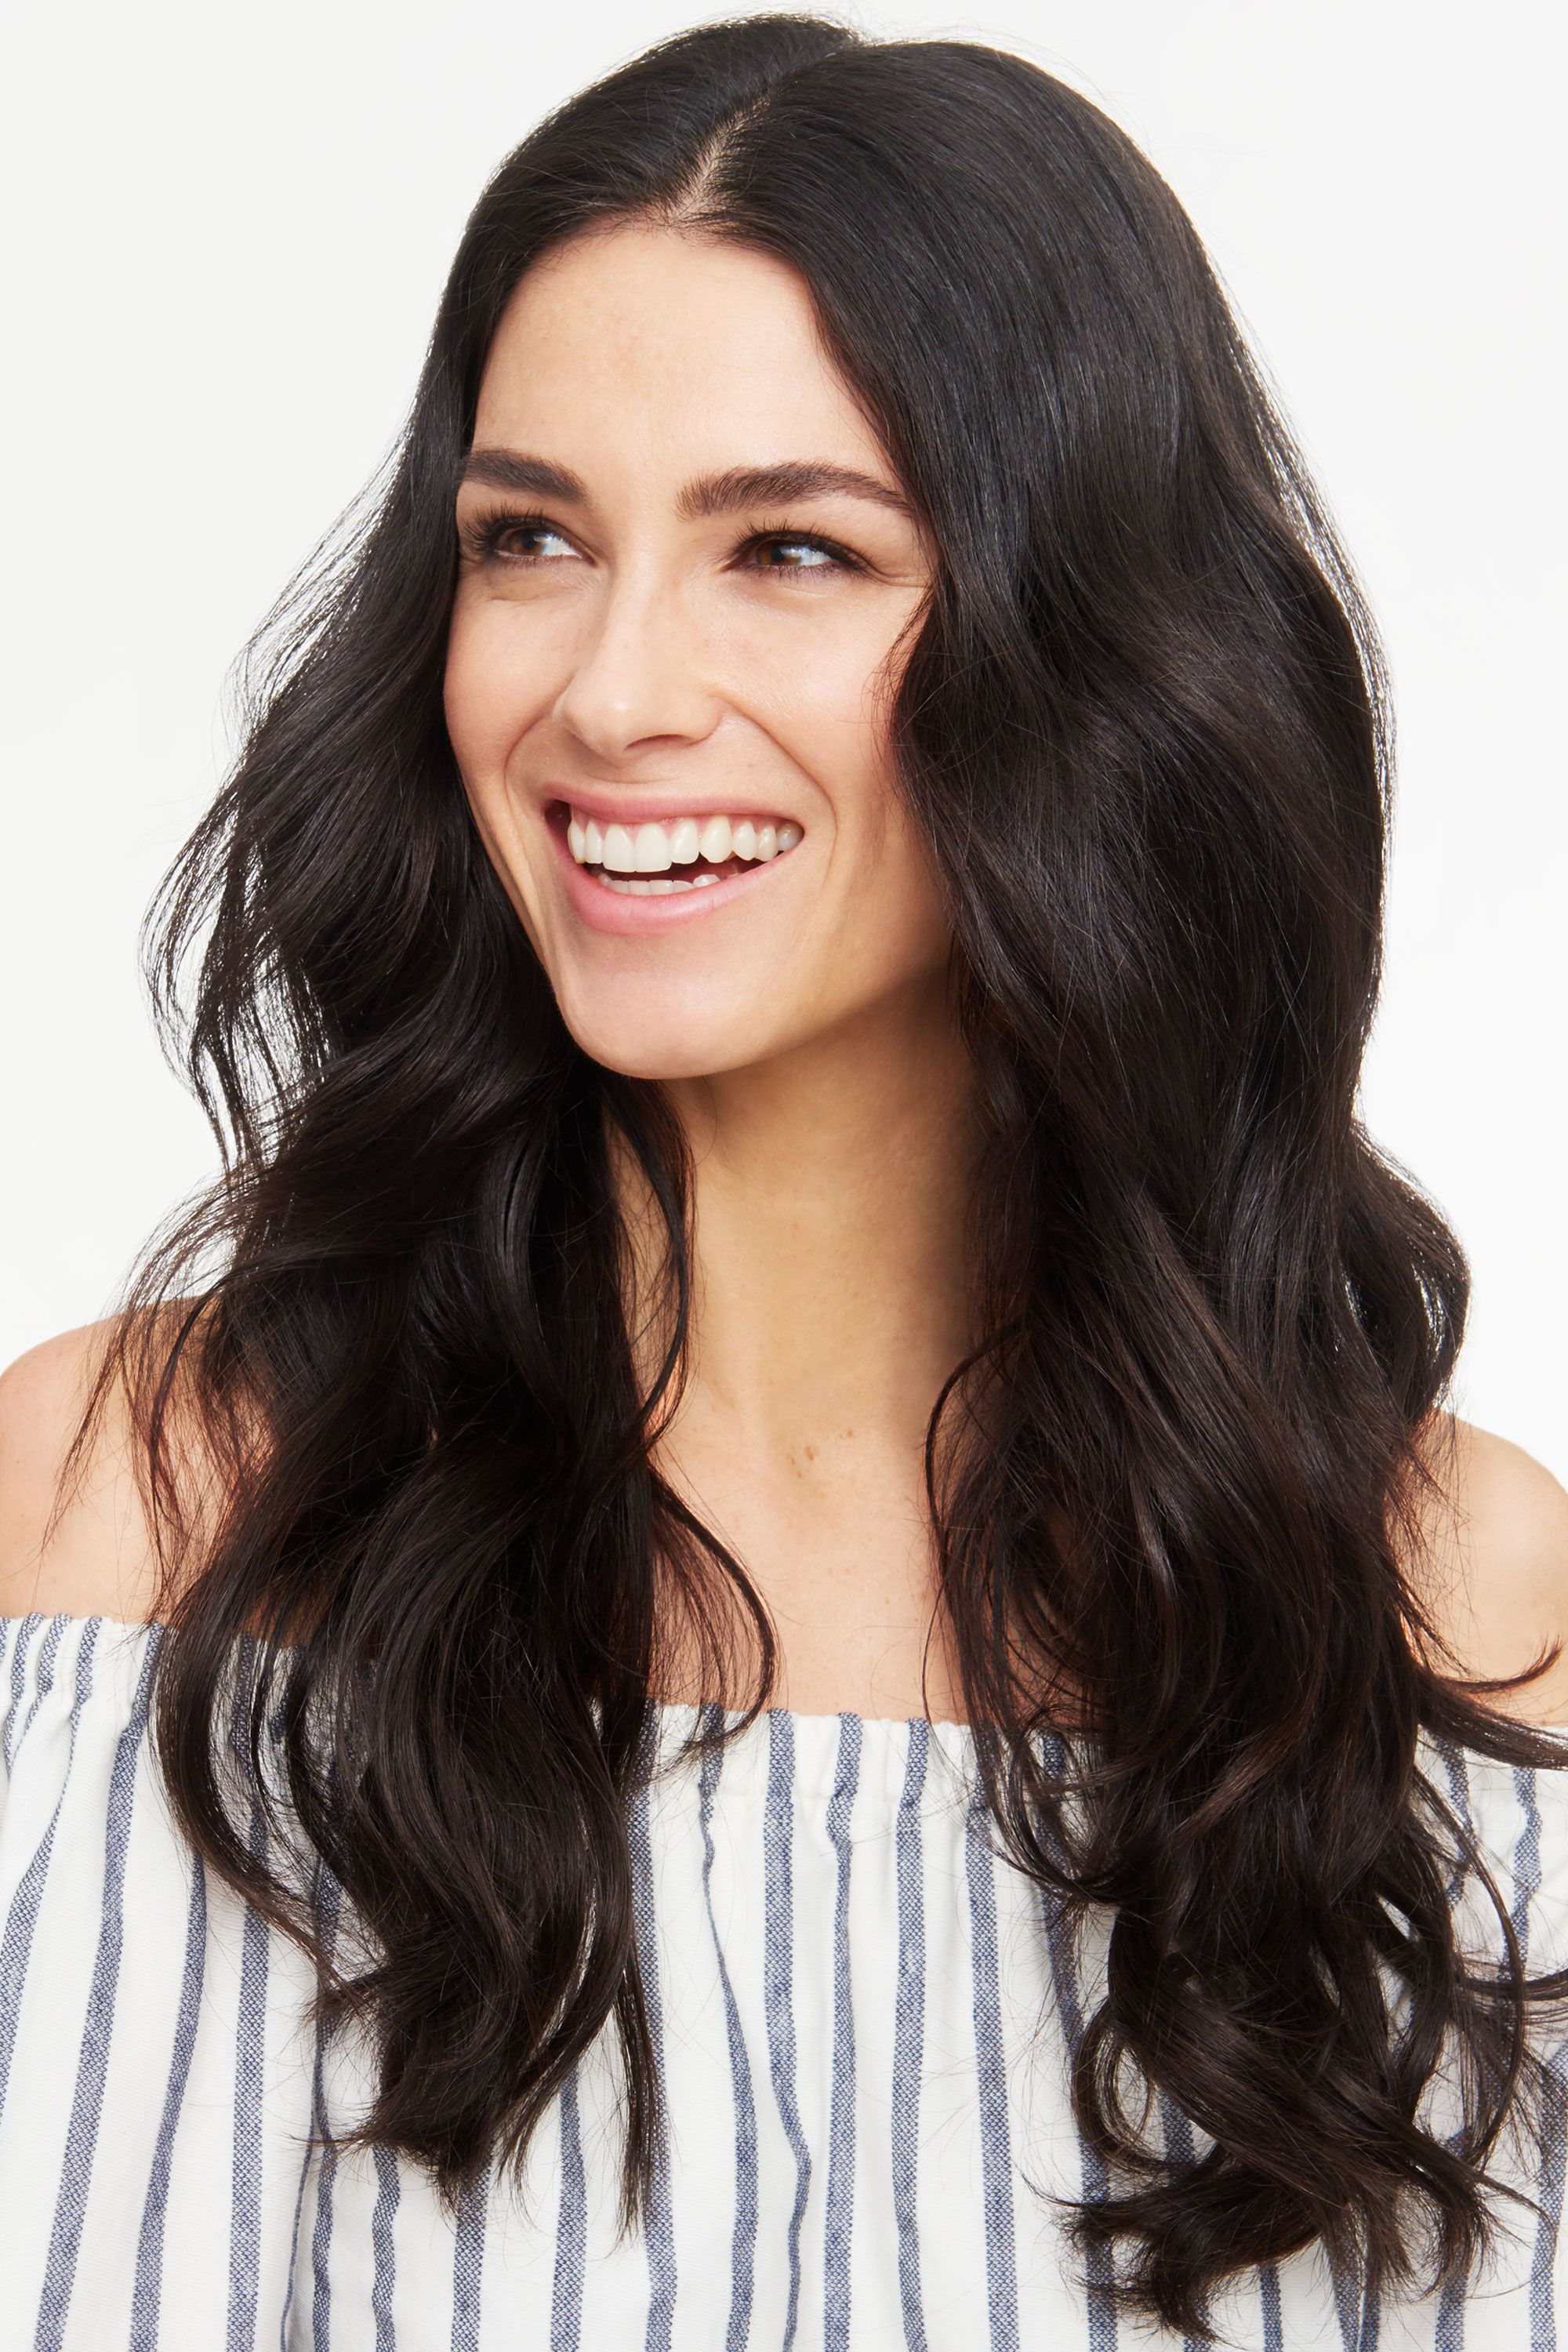 """<p>For a polished and relaxed style, do a blowout, then wrap one-inch sections of your hair around a curling wand, making sure not to overlap your strands. After you release the hair, loosen it up with your fingers. For this much fullness, use a volumizing collection like <a href=""""http://bit.ly/1XyoSPb"""" target=""""_blank"""">Suave Sea Mineral Infusion Shampoo and Conditioner</a> before you blow-dry. </p>"""